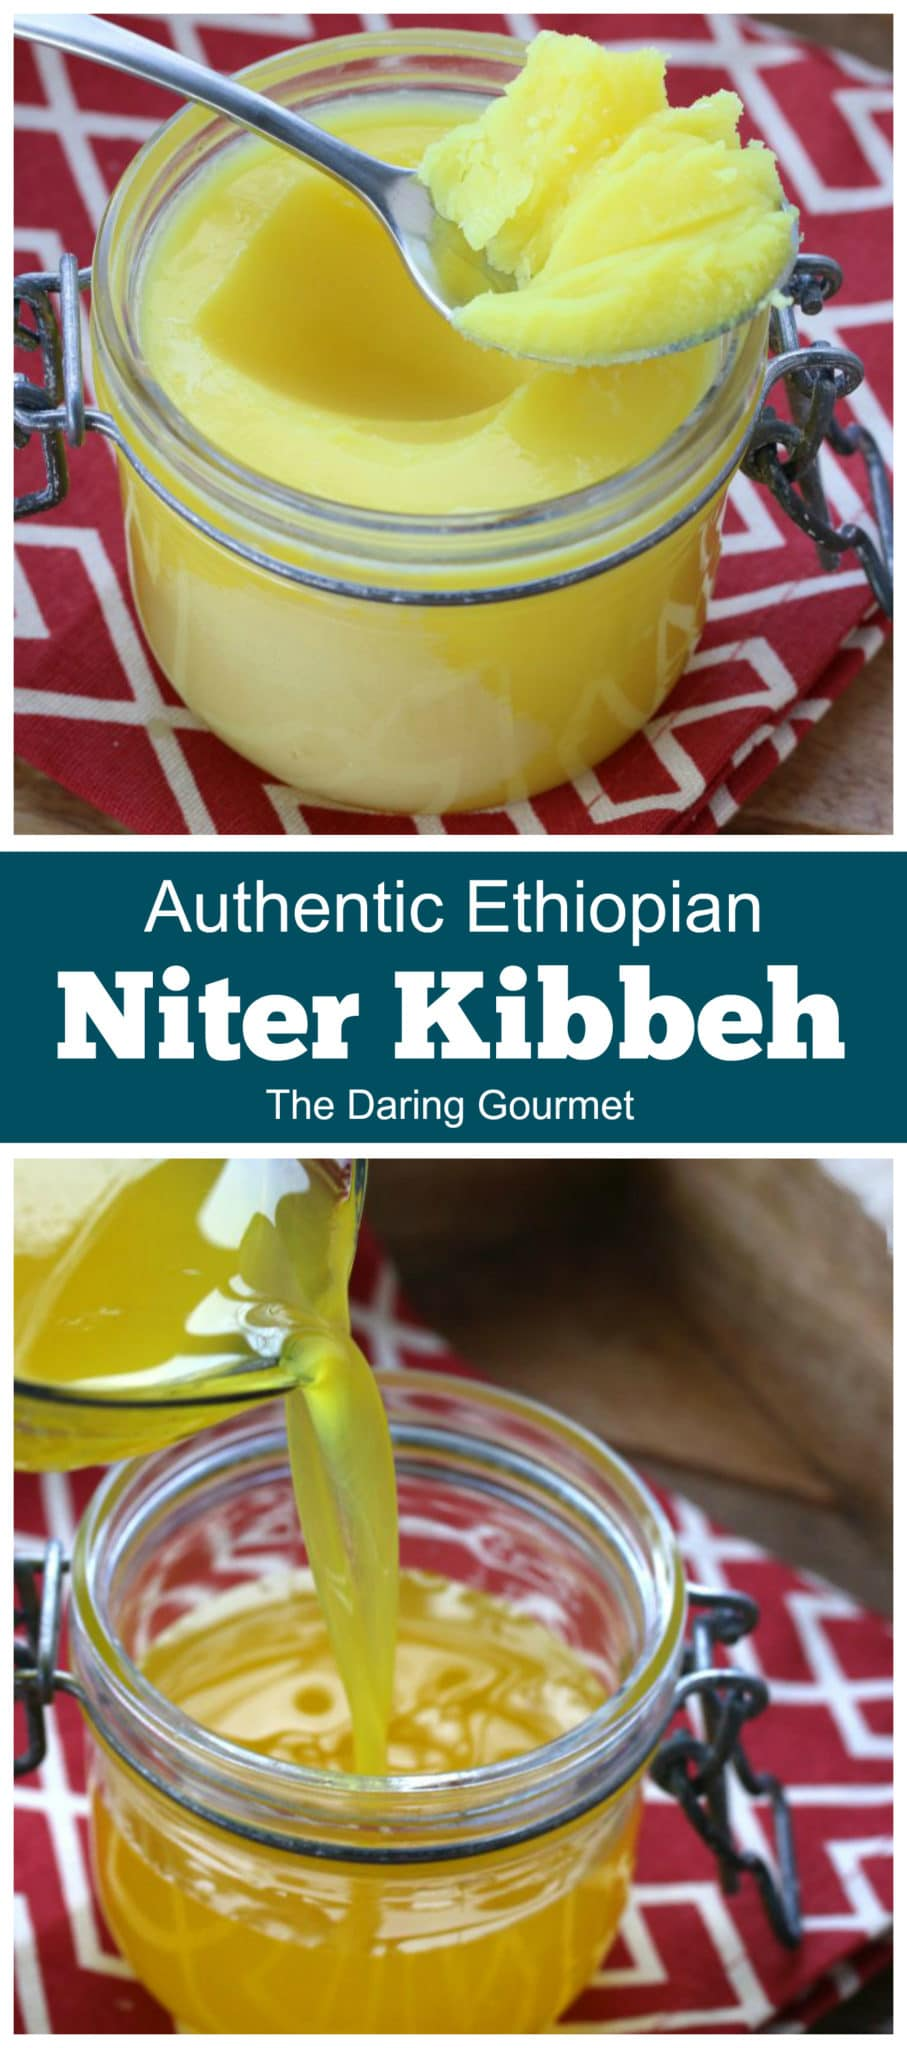 niter kibbeh recipe homemade authentic traditional ethiopian spiced clarified butter